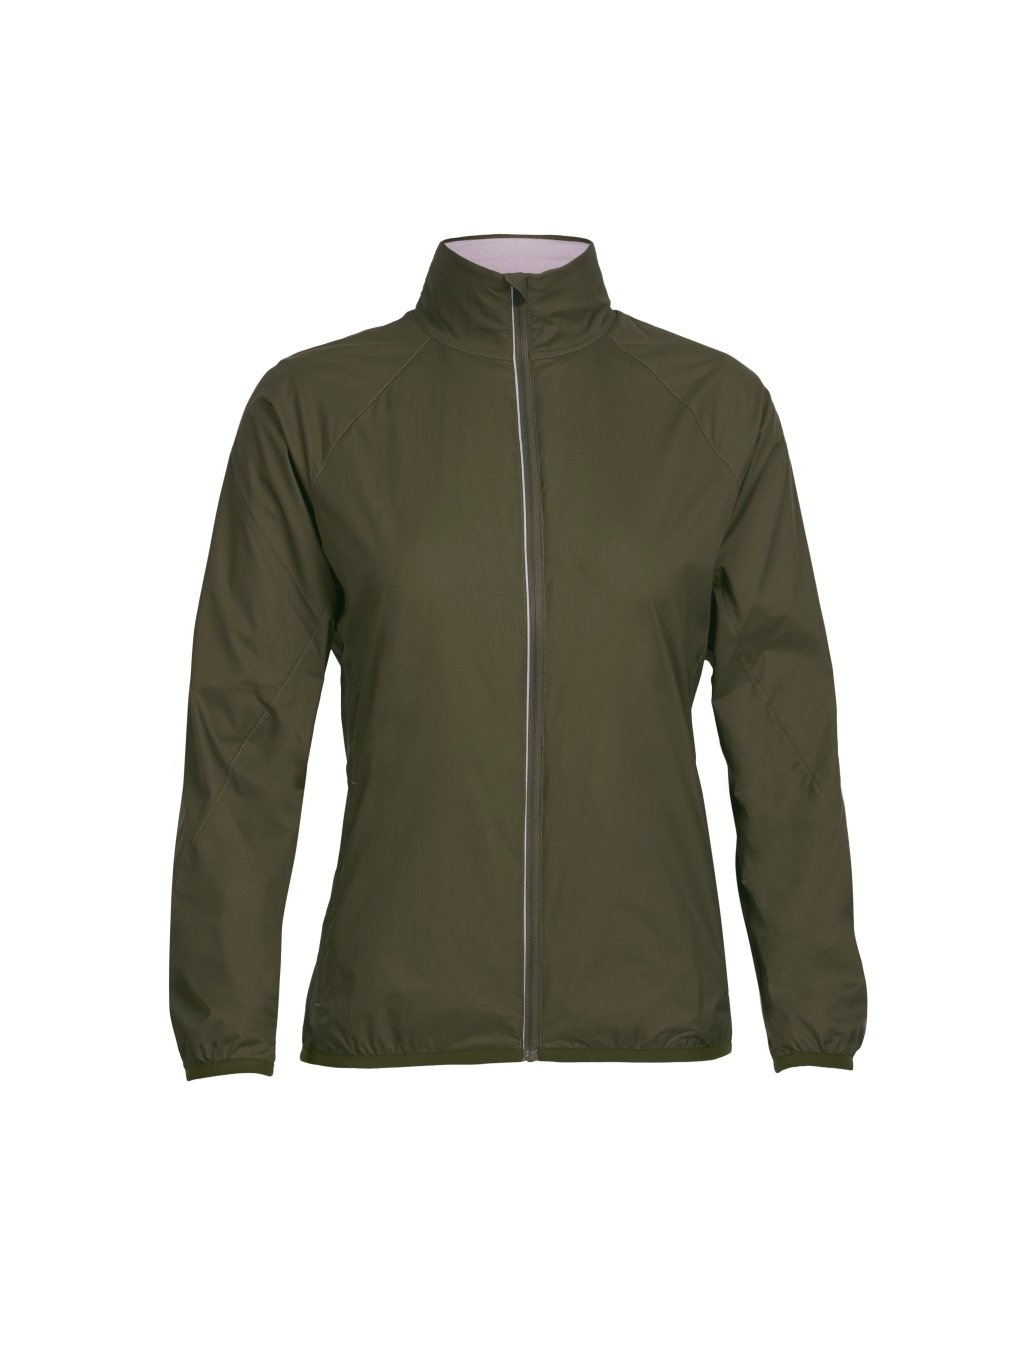 SS17 WOMEN RUSH WINDBREAKER 103640301 1